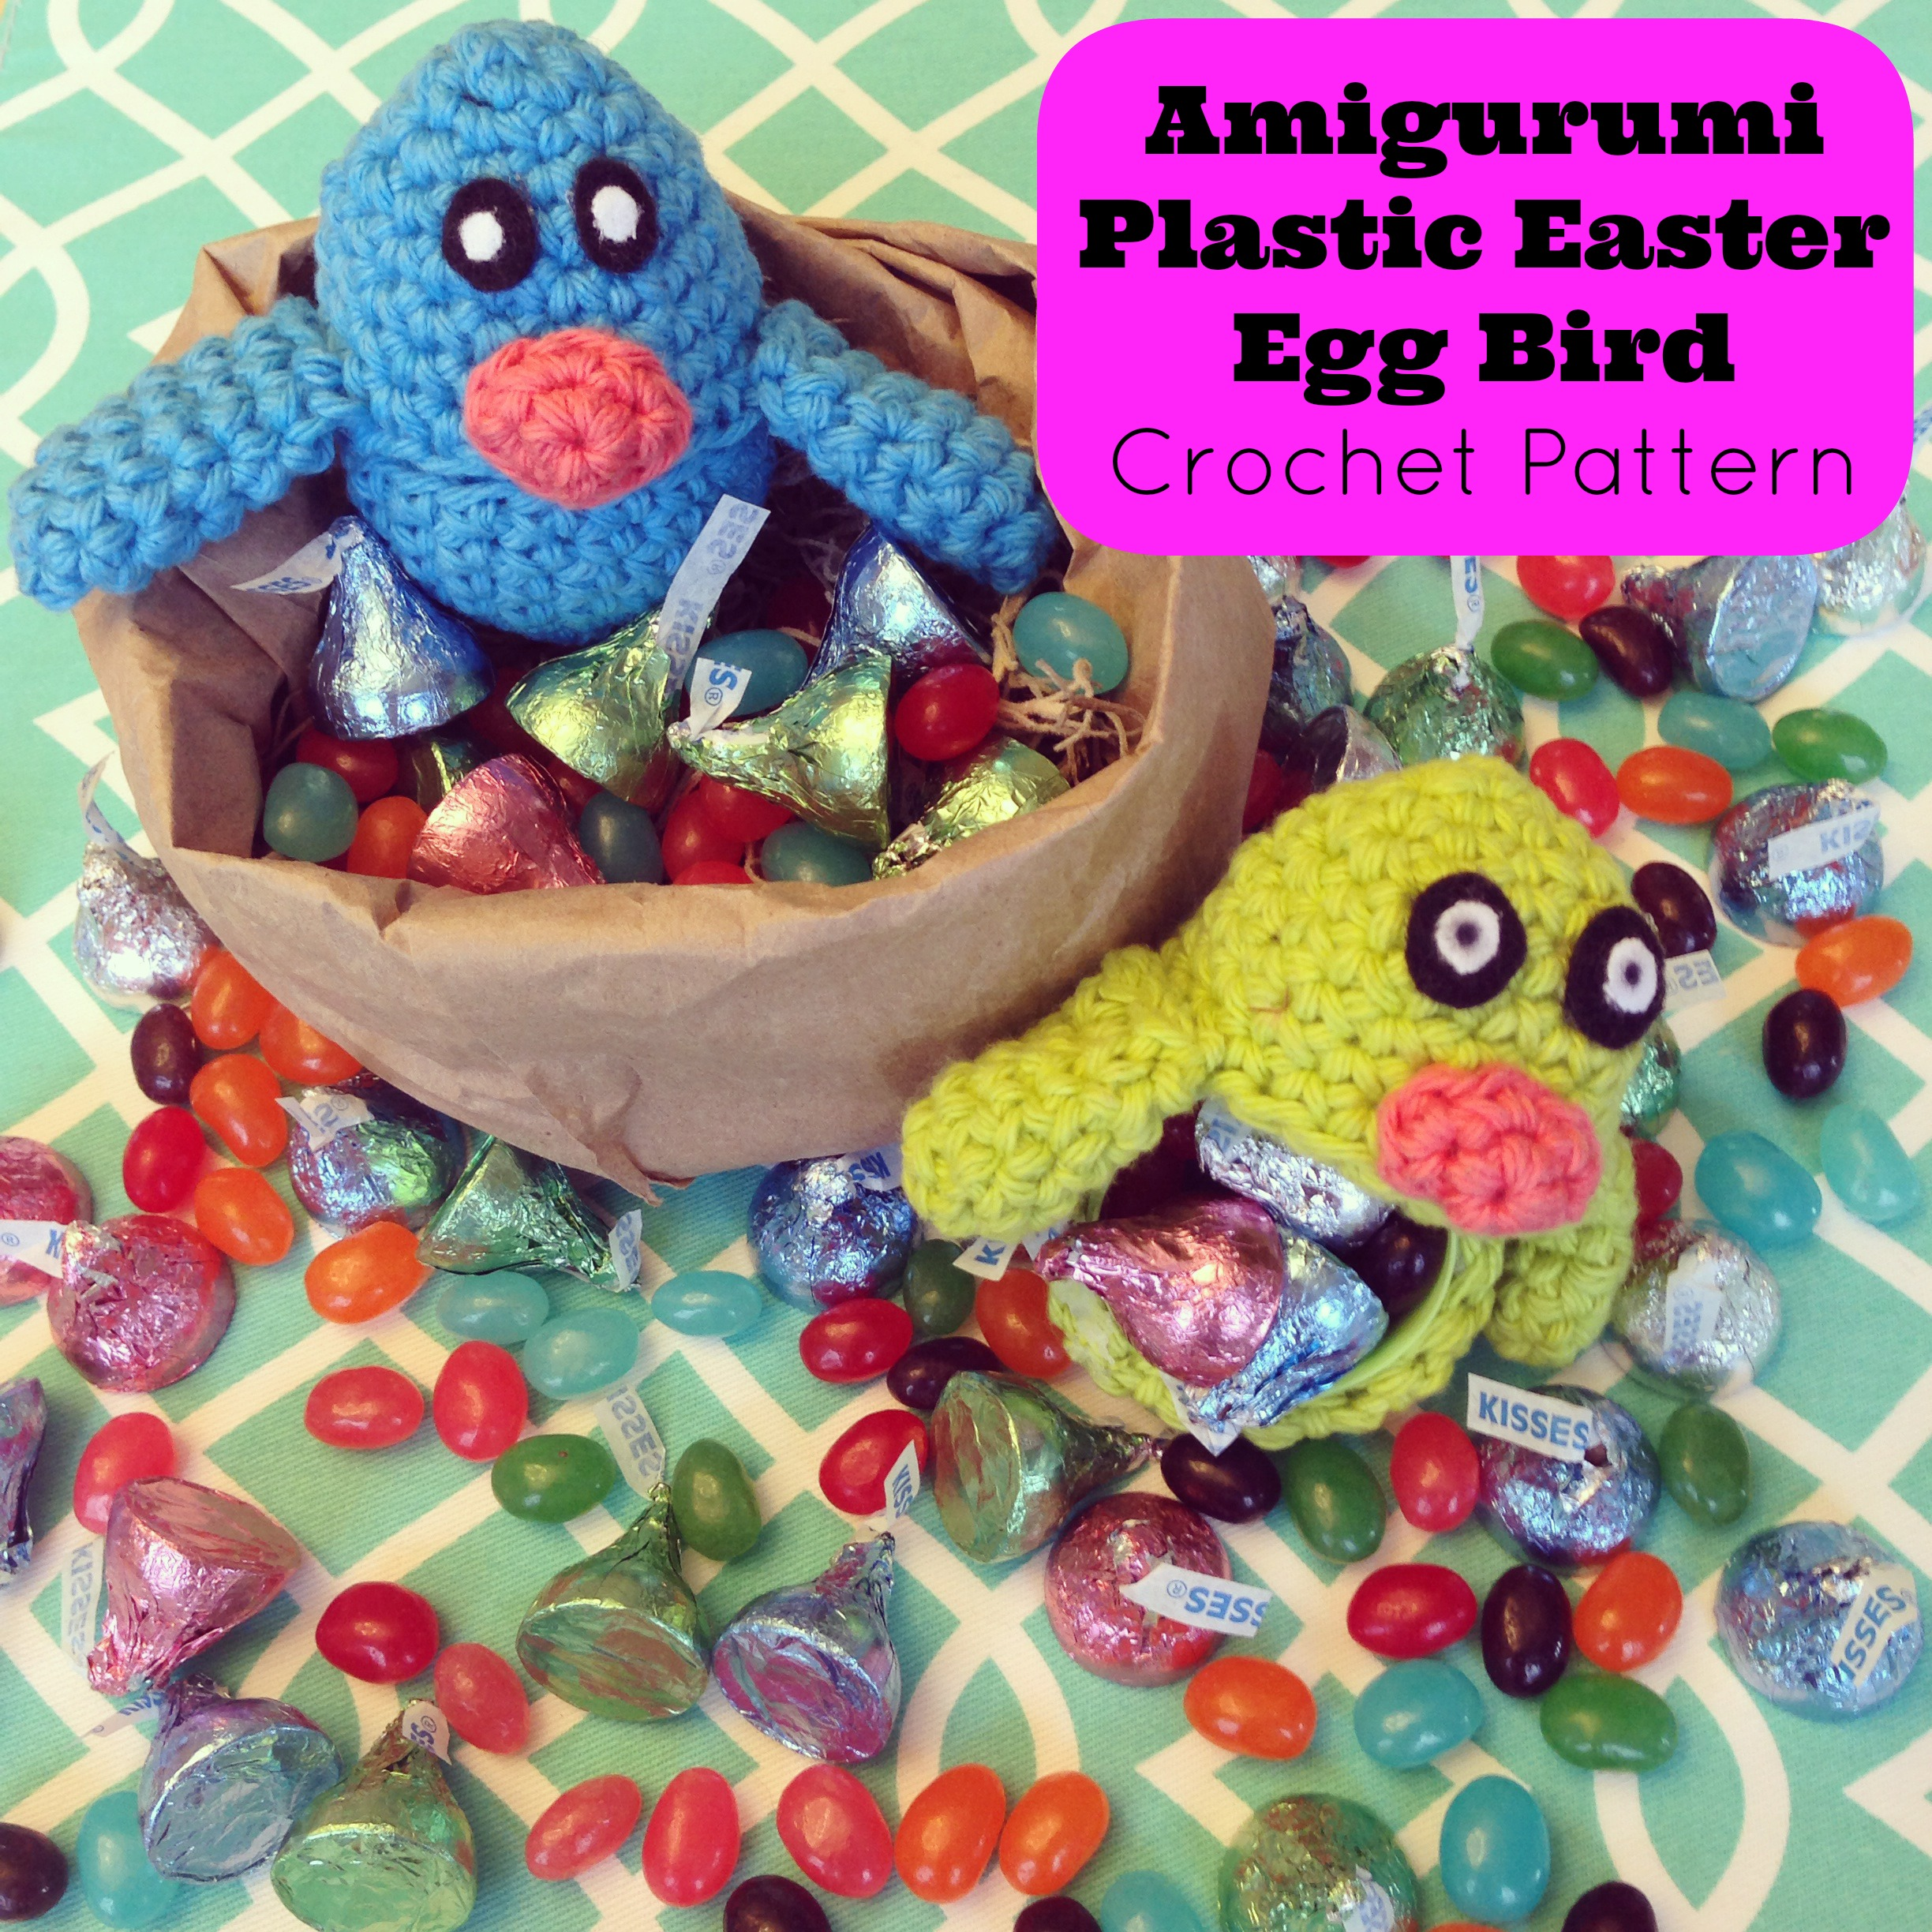 Amigurumi Easter Eggs Crochet Pattern : Crochet It! Amigurumi Plastic Easter Egg Birds for Easter ...